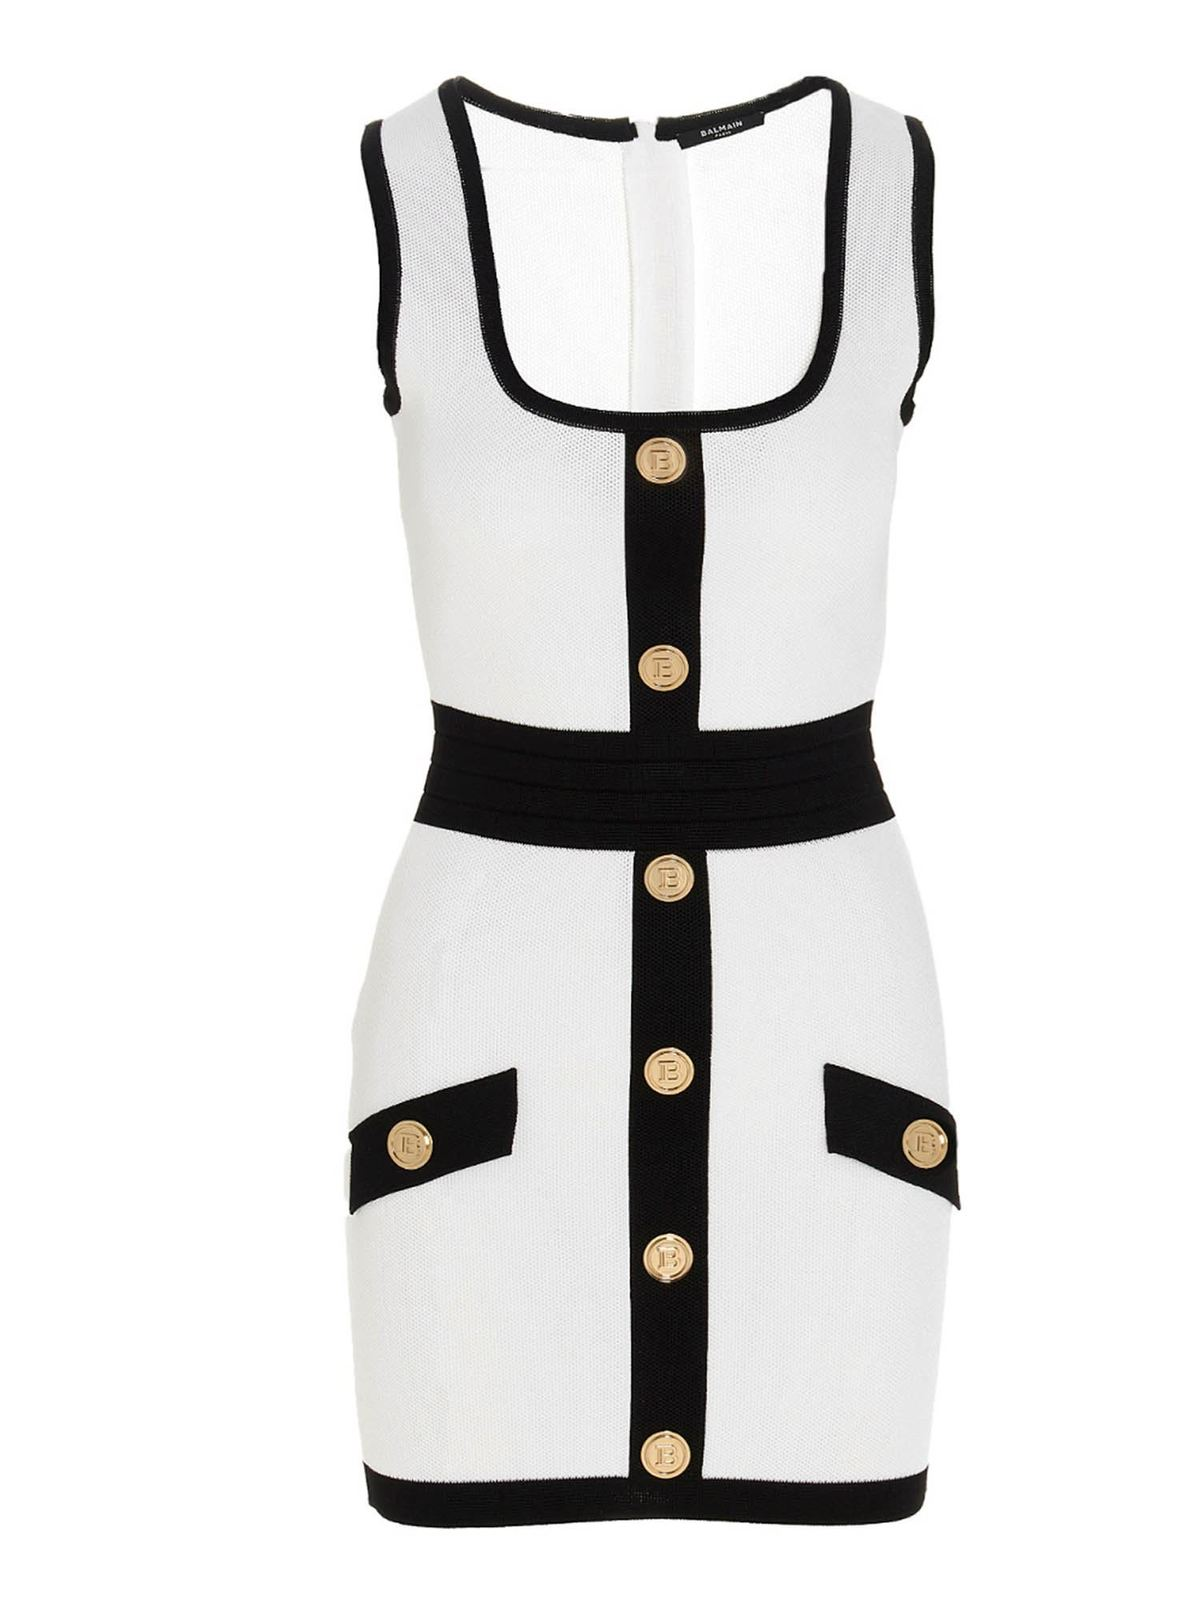 Balmain BUTTONED DRESS IN WHITE AND BLACK